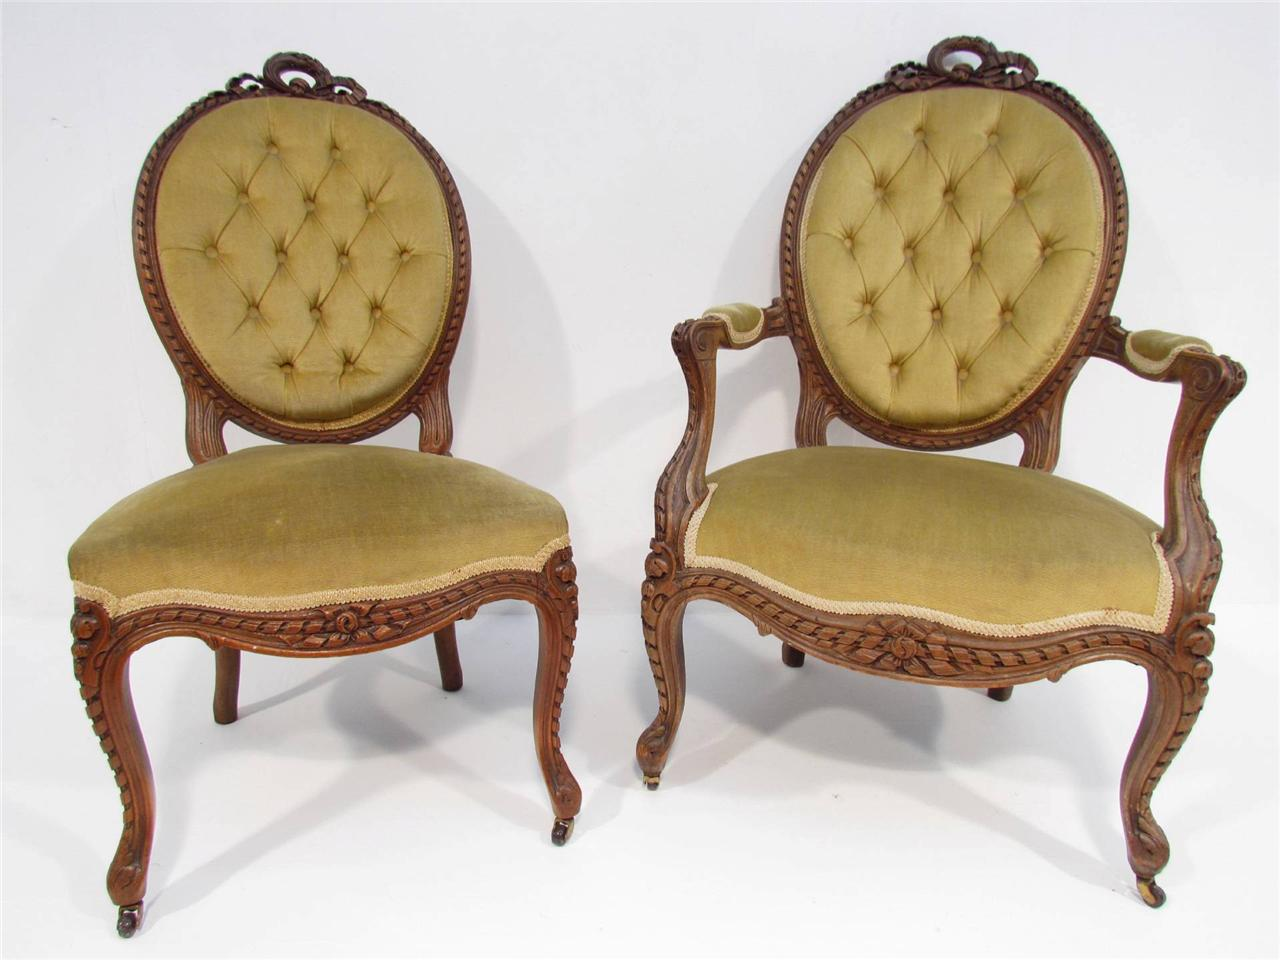 A Beautiful Pair of Antique French Oak Bedroom Chairs C 1920